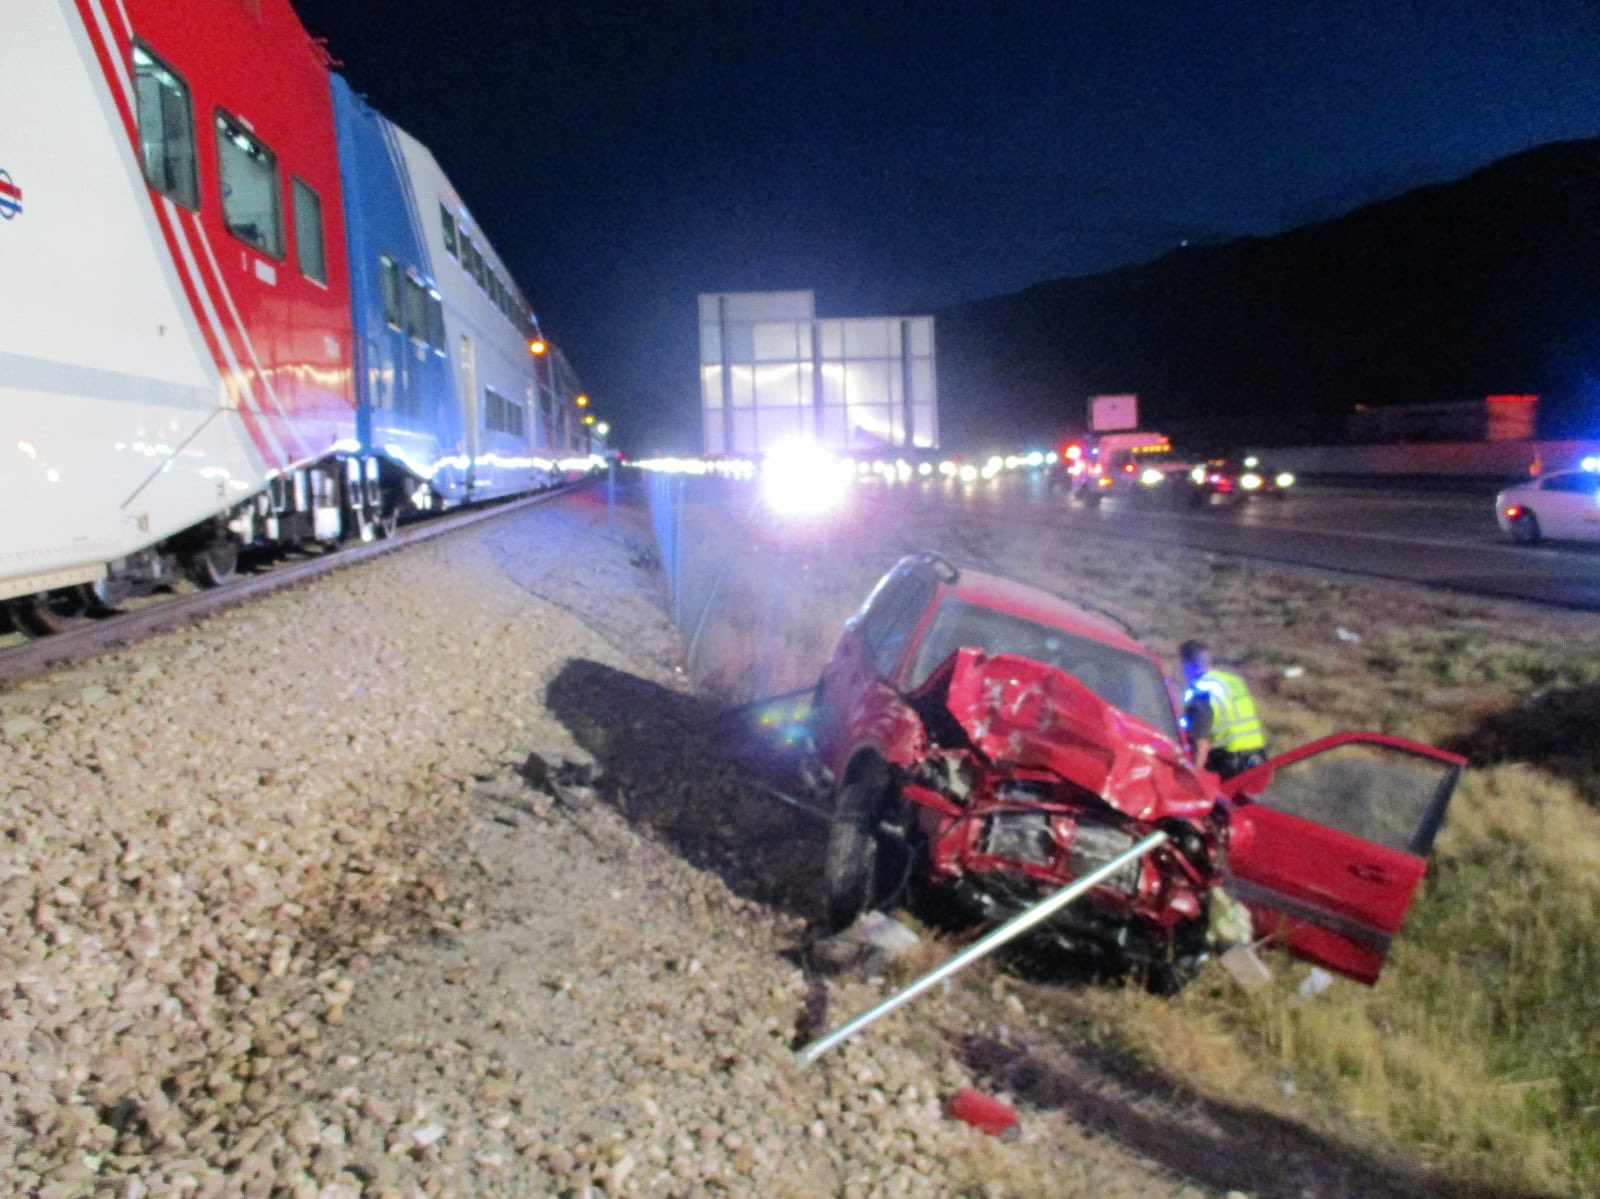 A damaged SUV is pictured after it was hit by a FrontRunner train in Centerville on Wednesday, Oct. 16, 2019. According to the UHP, the driver experienced a medical emergency and drifted off I-15, ending up on the railroad tracks. Trooper Ruben Correa responded to the scene and was able to pull the unconscious driver from the vehicle a second before it was hit by the train.